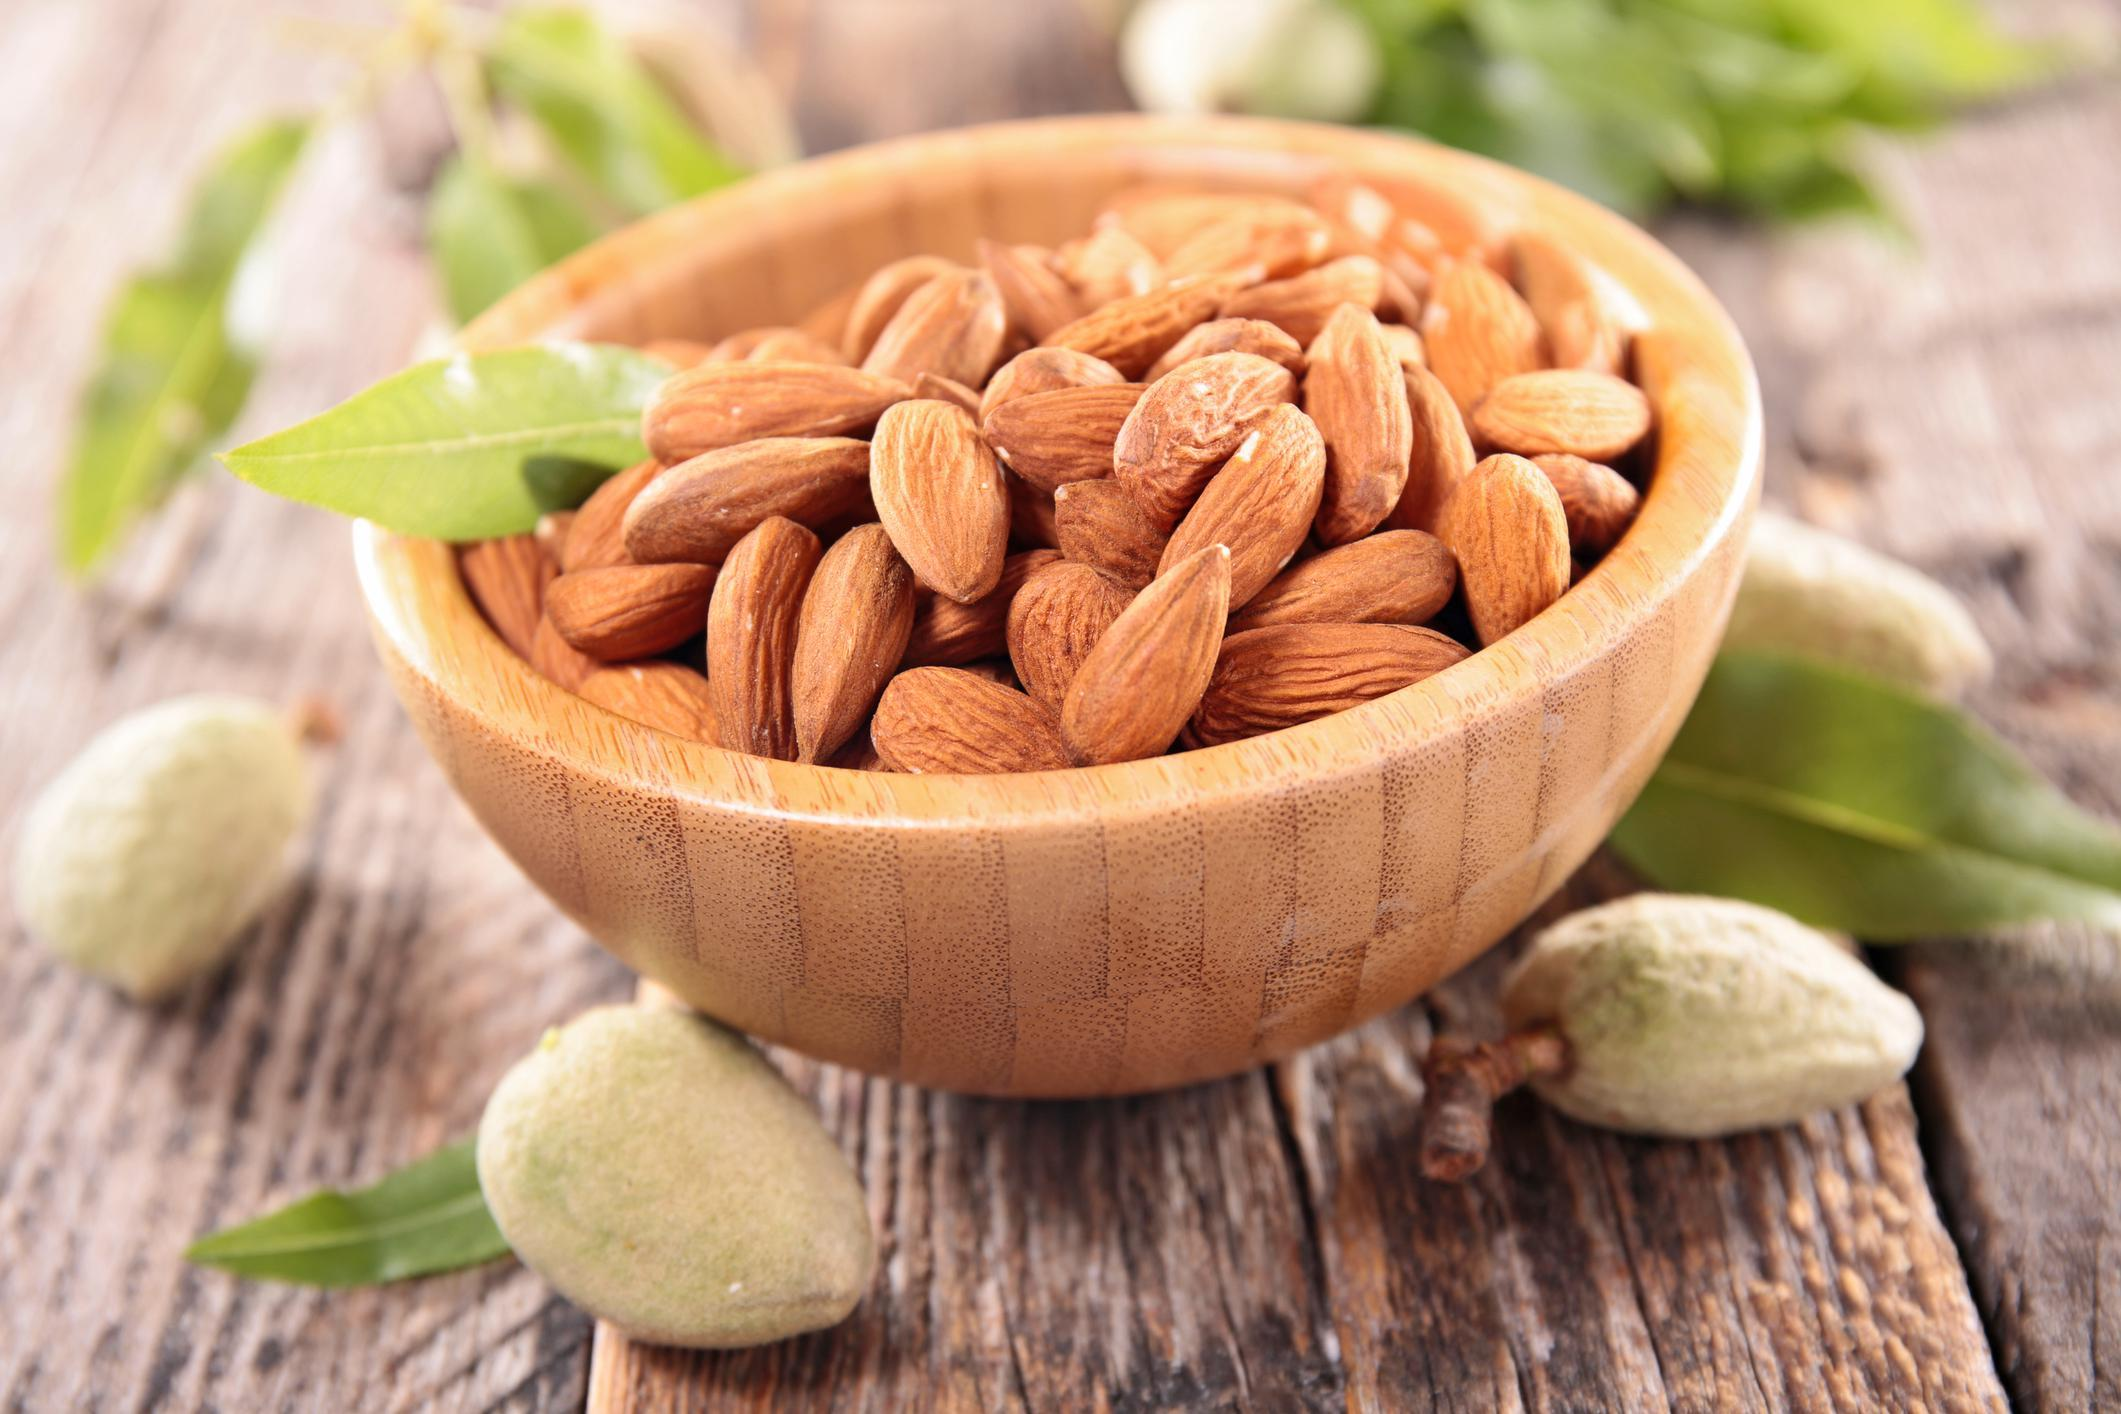 Almonds Aren't Nuts, They're Fruit